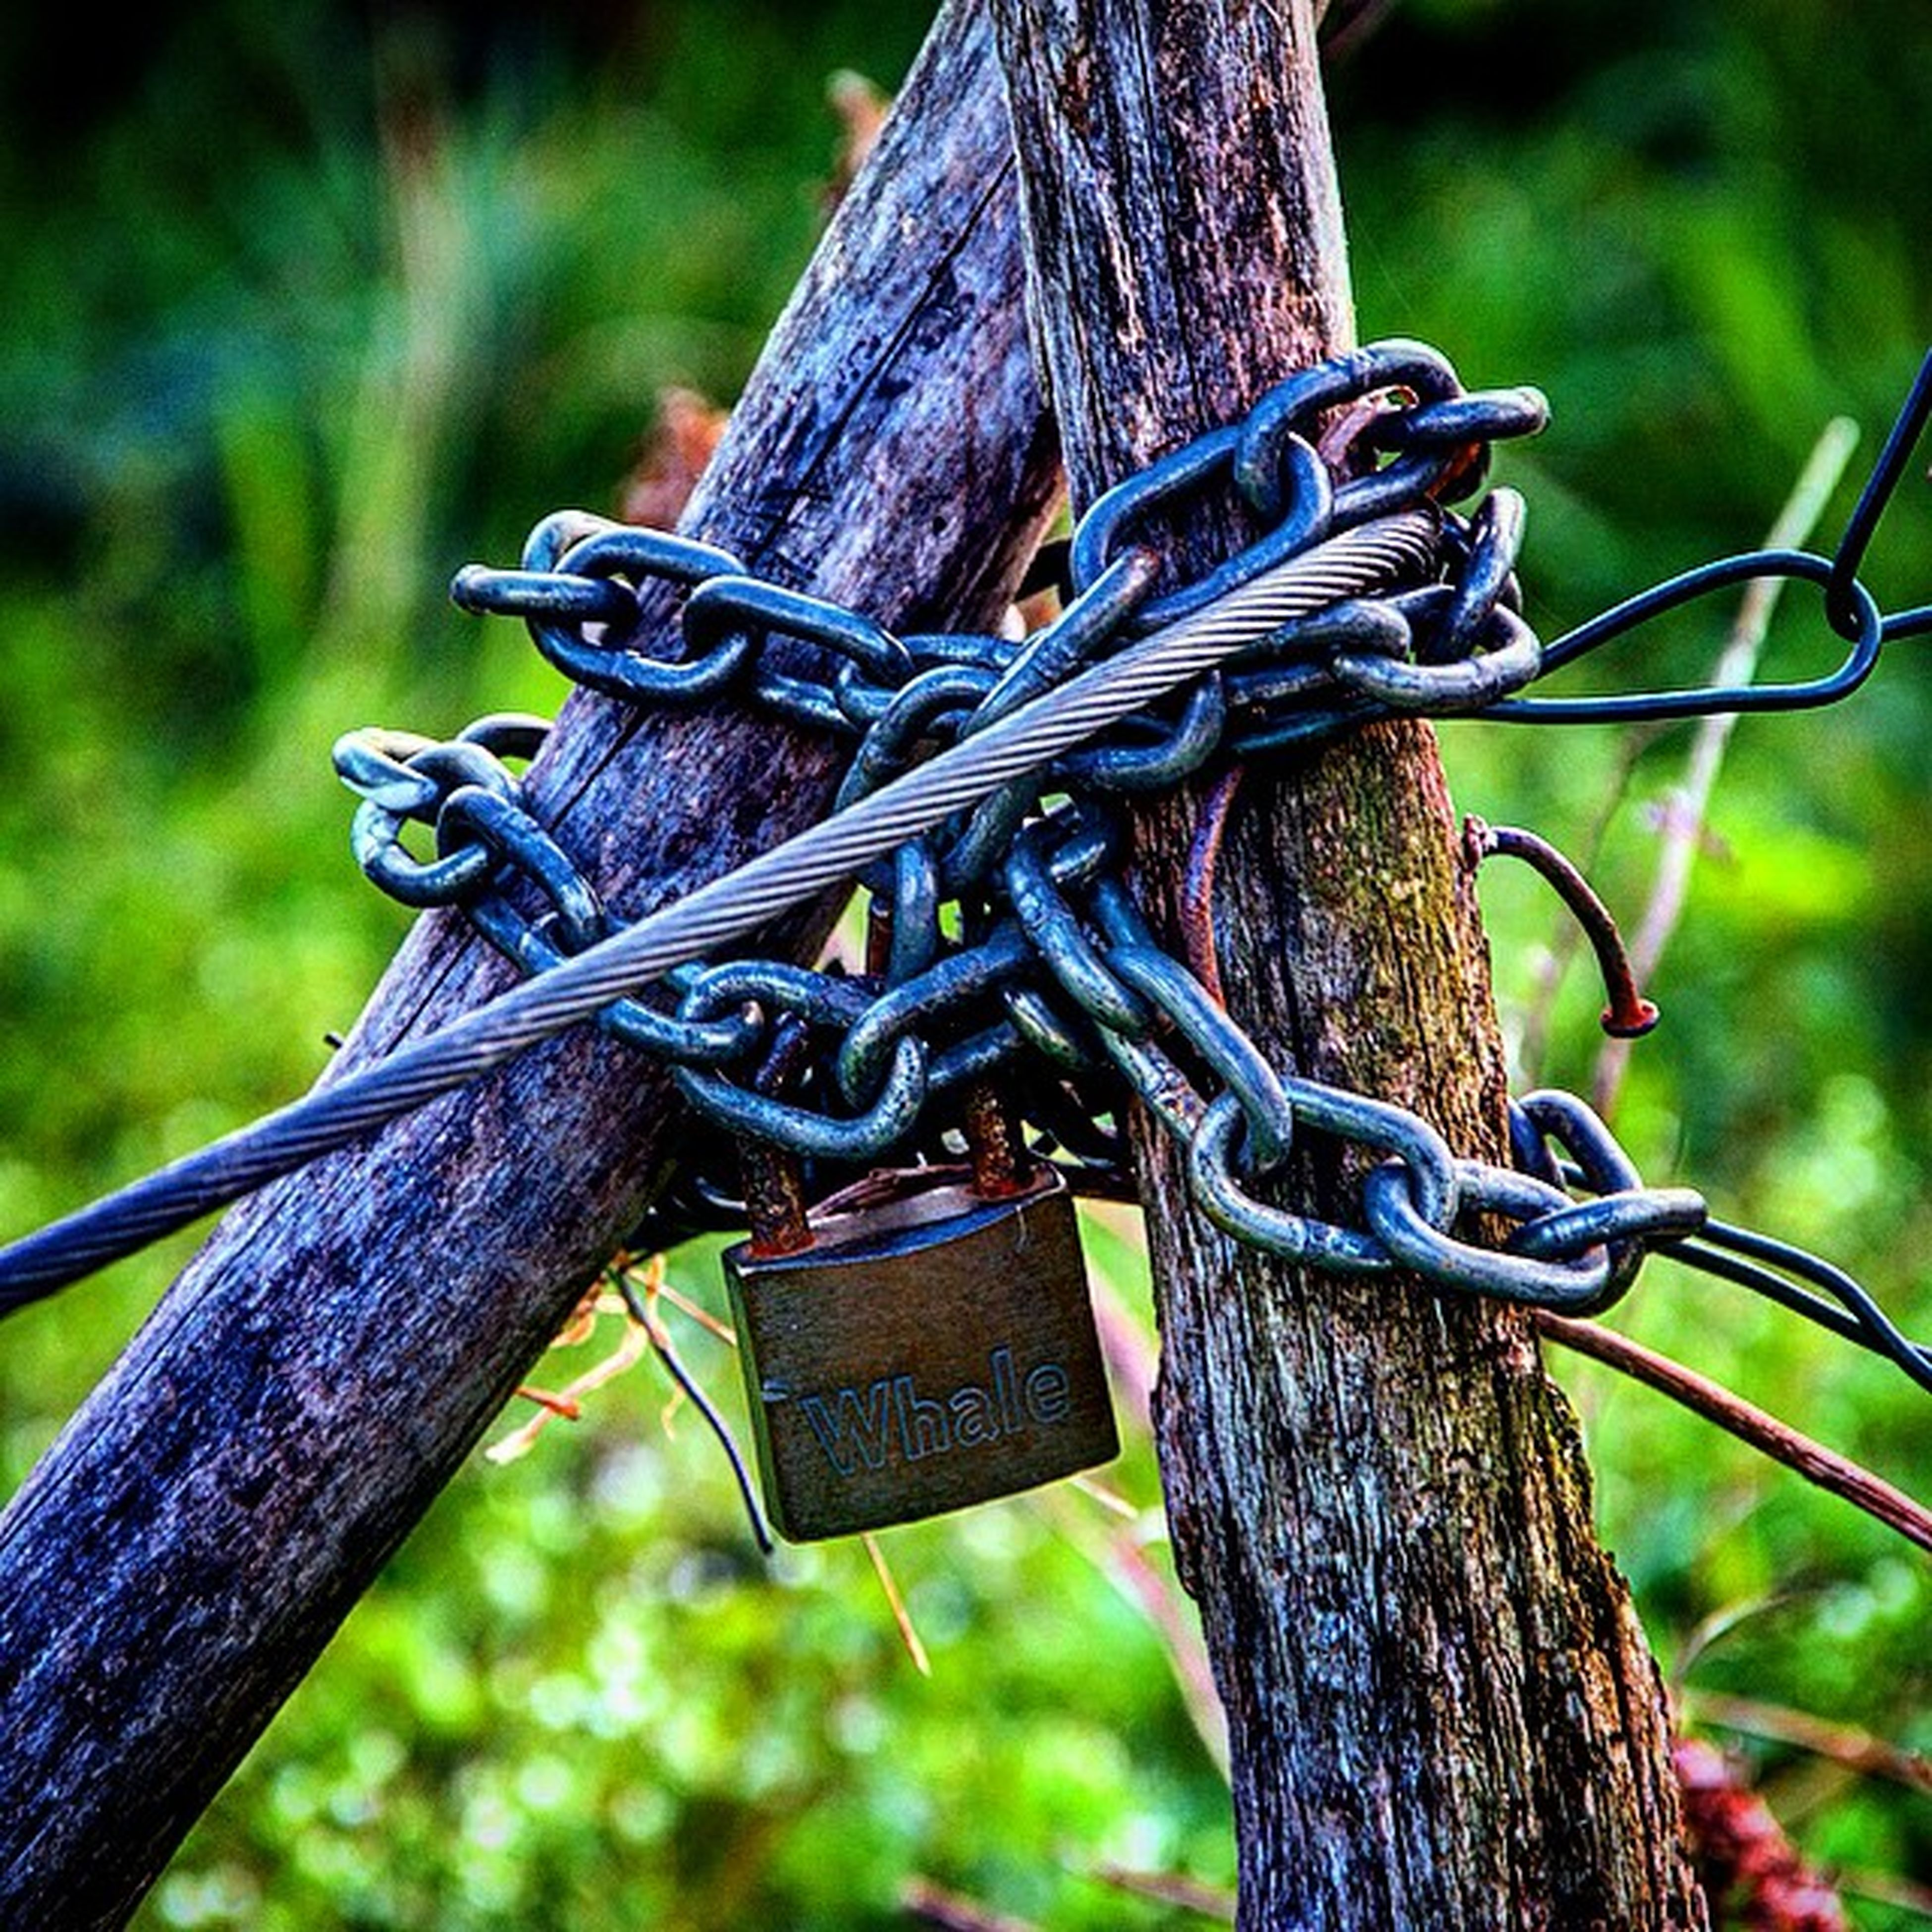 focus on foreground, close-up, tree trunk, metal, tree, wood - material, rusty, safety, protection, chain, fence, security, old, hanging, day, outdoors, pole, strength, rope, part of